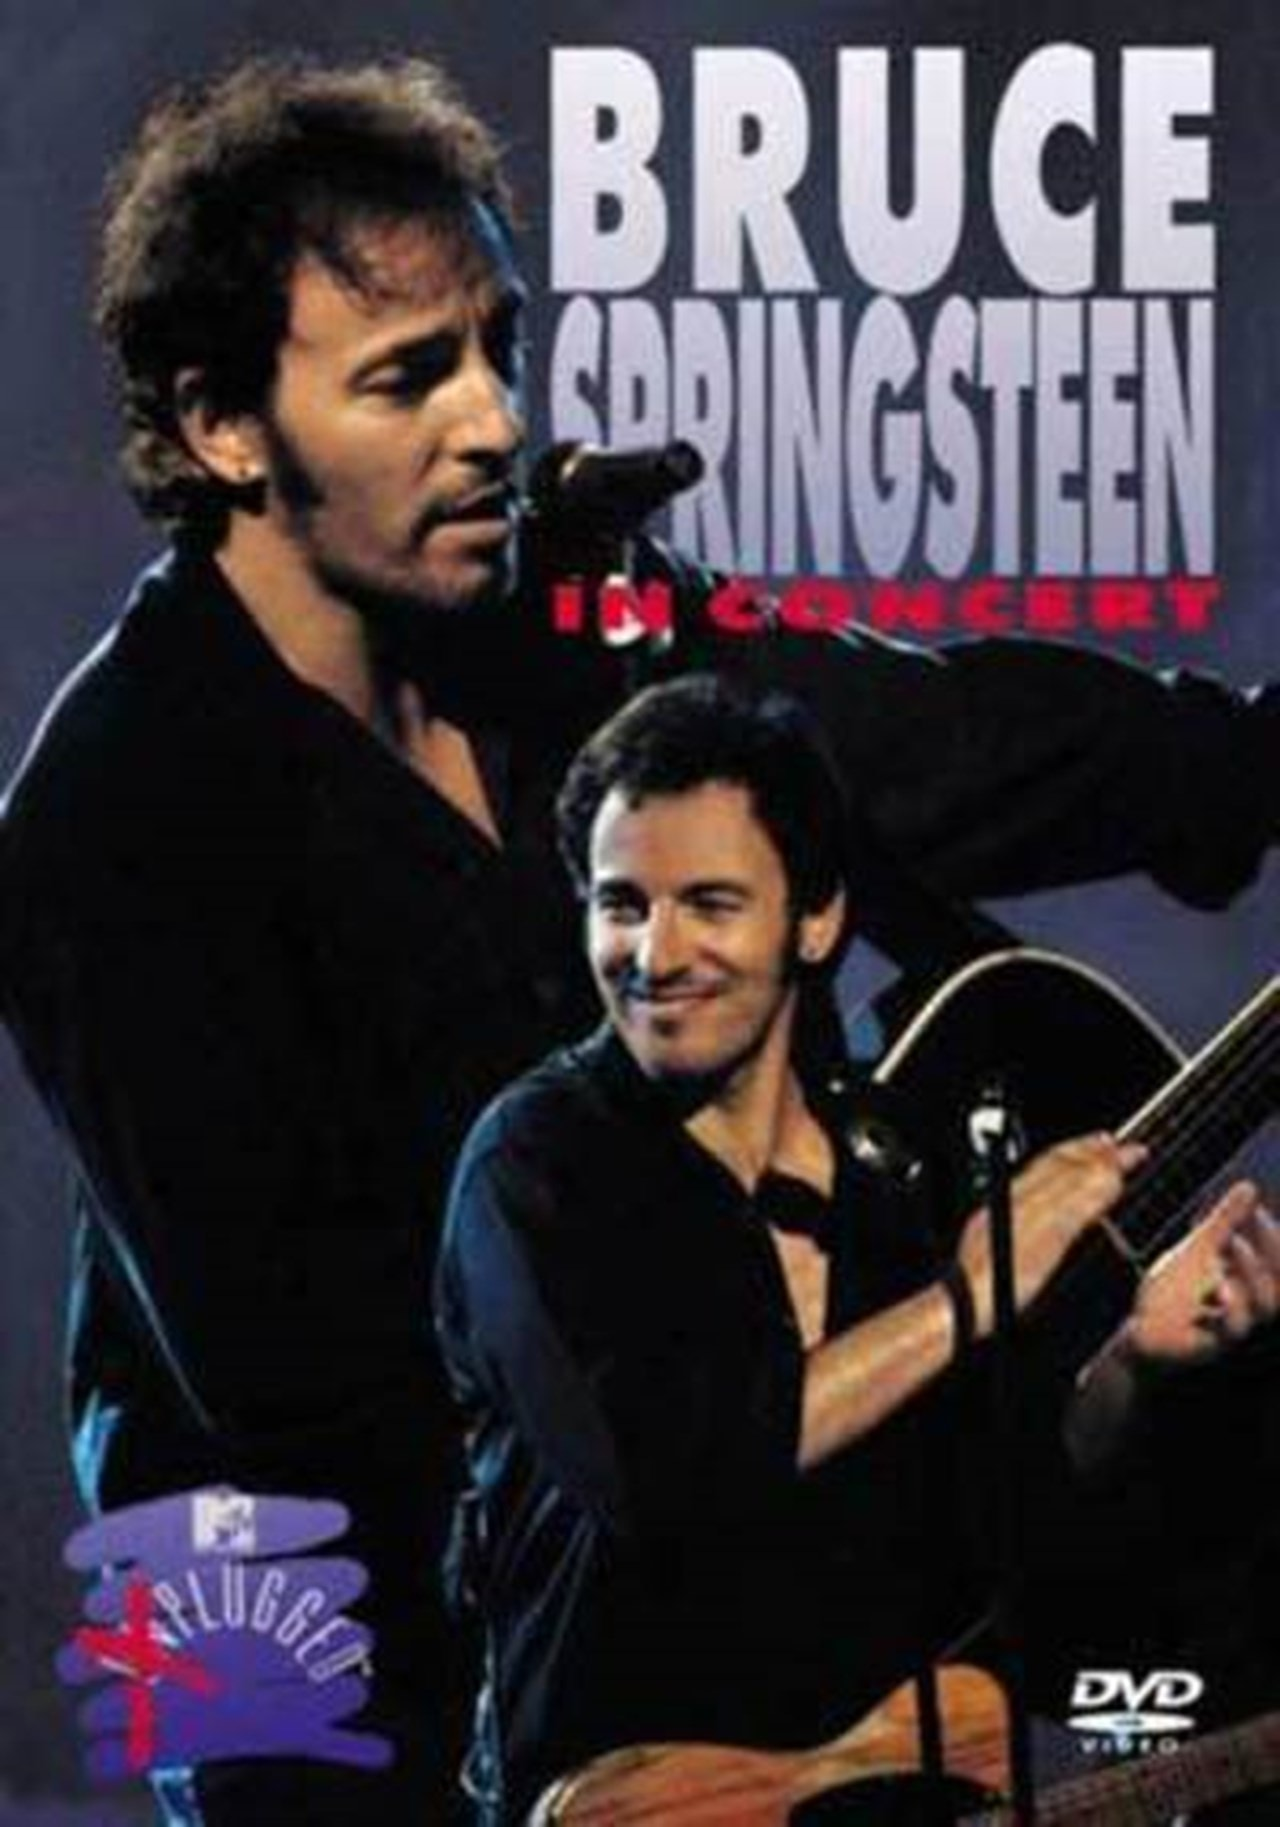 Bruce Springsteen: In Concert - MTV Plugged - 1